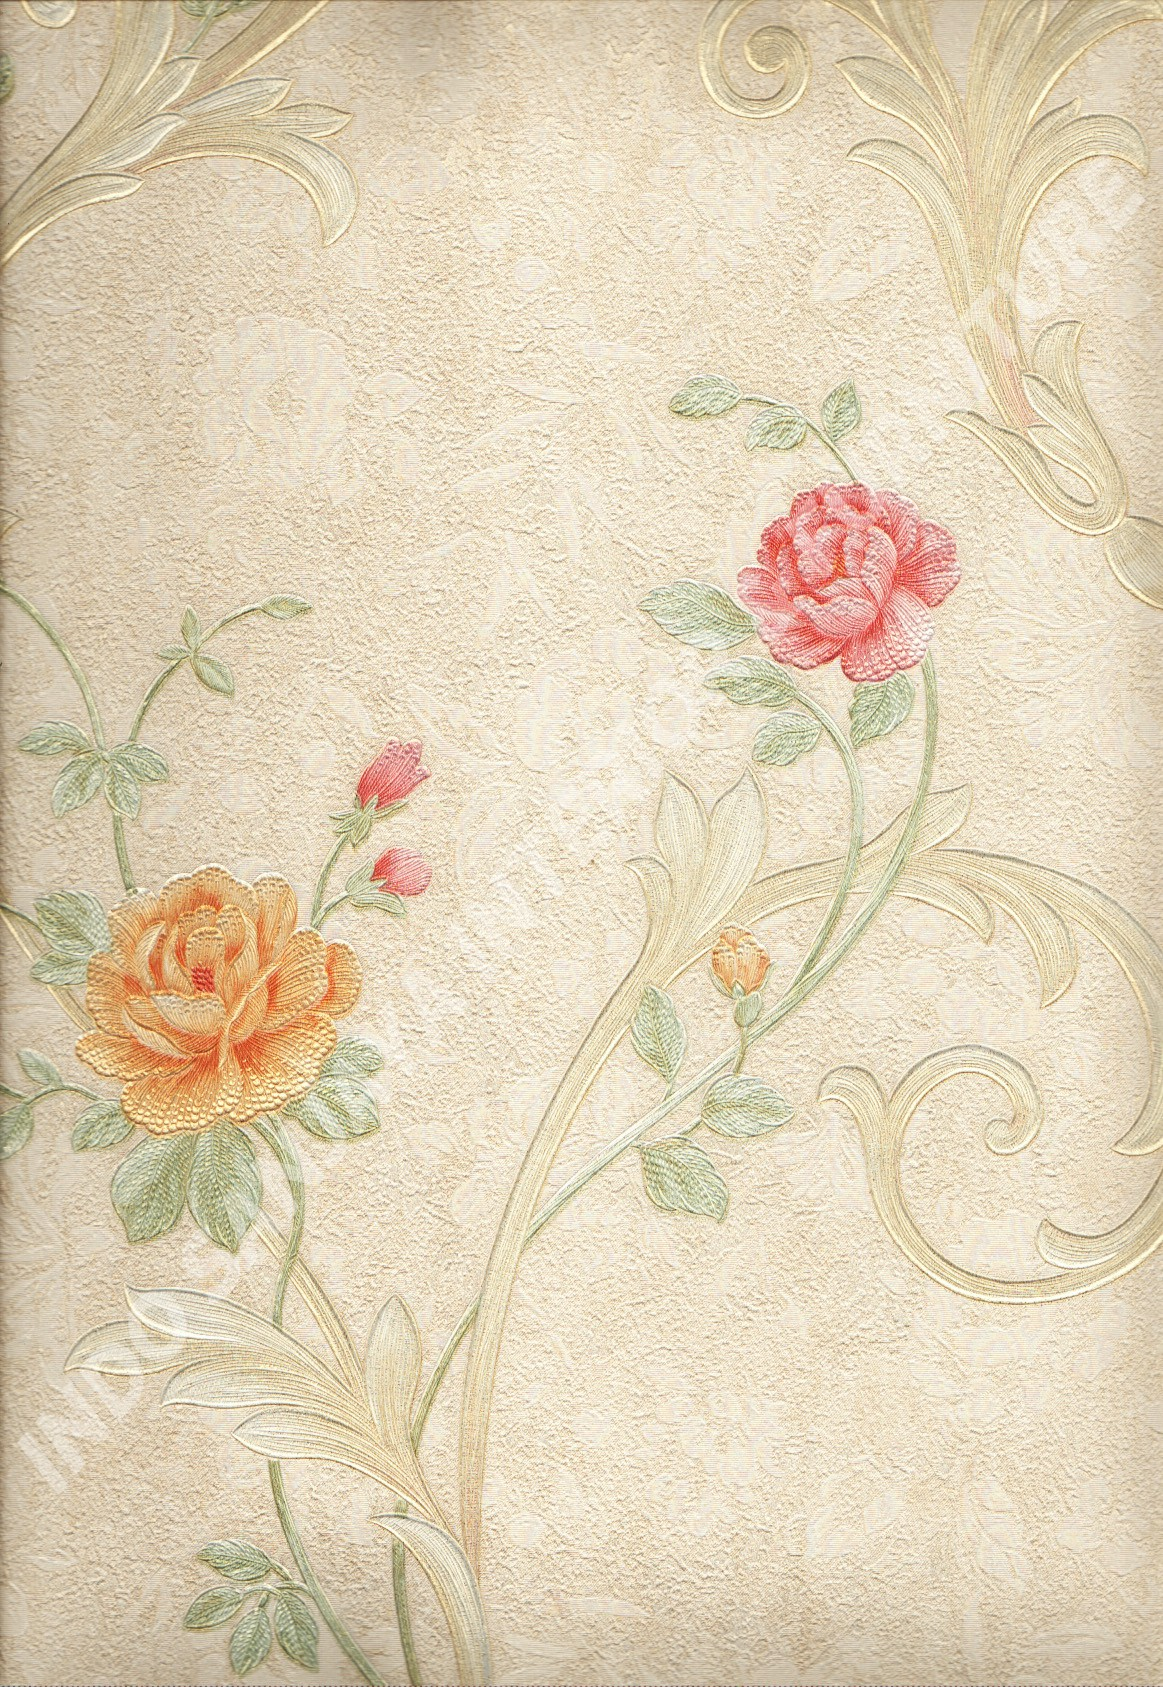 wallpaper   Wallpaper Bunga 51009-2:51009-2 corak  warna